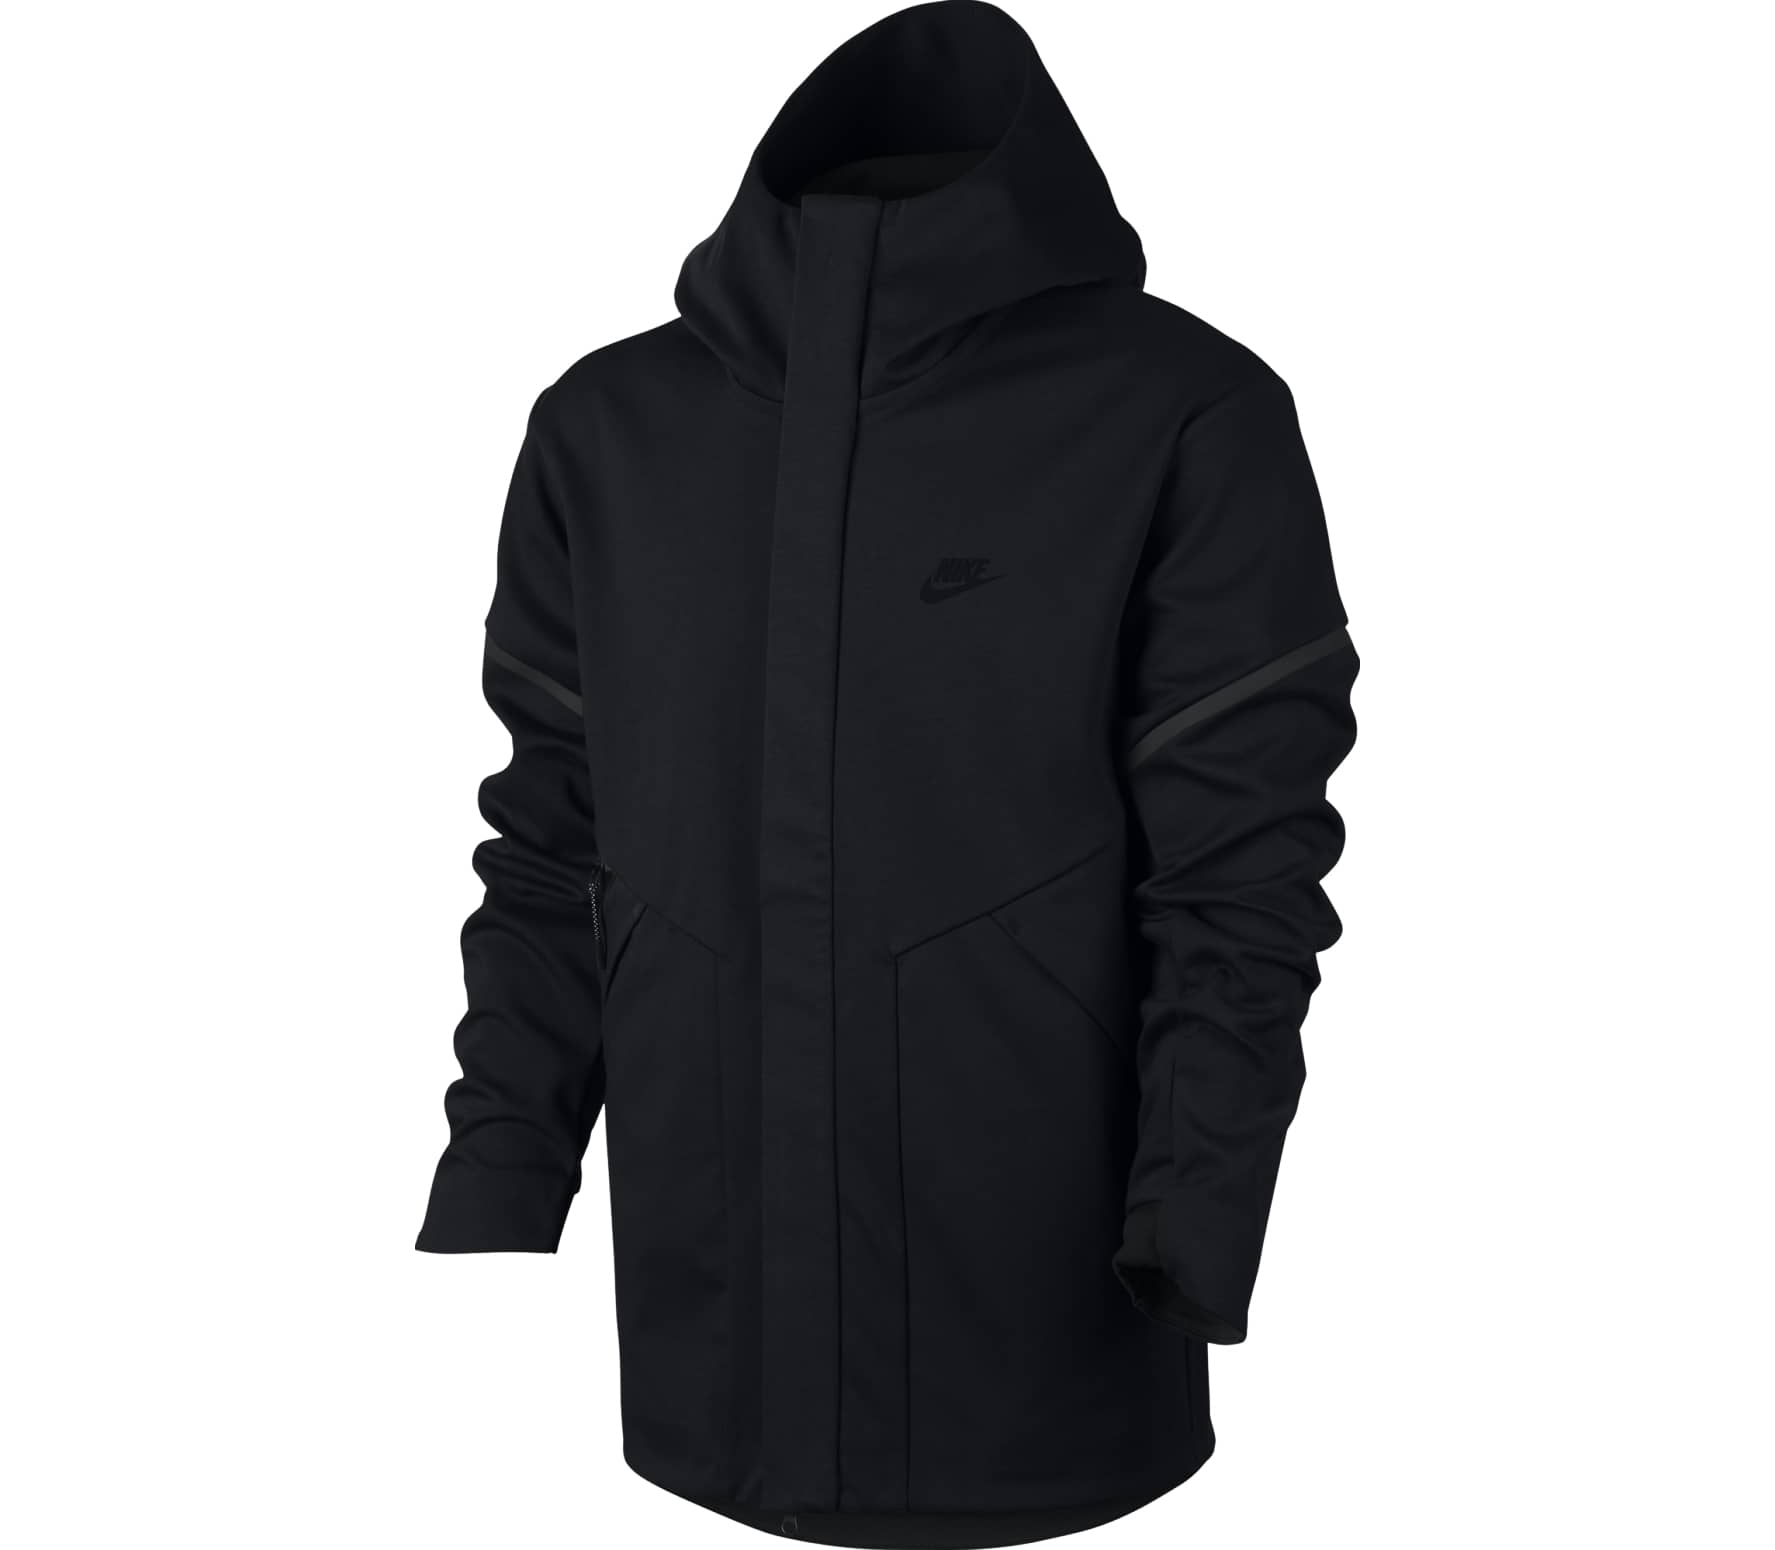 743e9ddf1db95b Nike - Tech Fleece Windrunner Jacket Herren Fleecejacke (schwarz) im ...